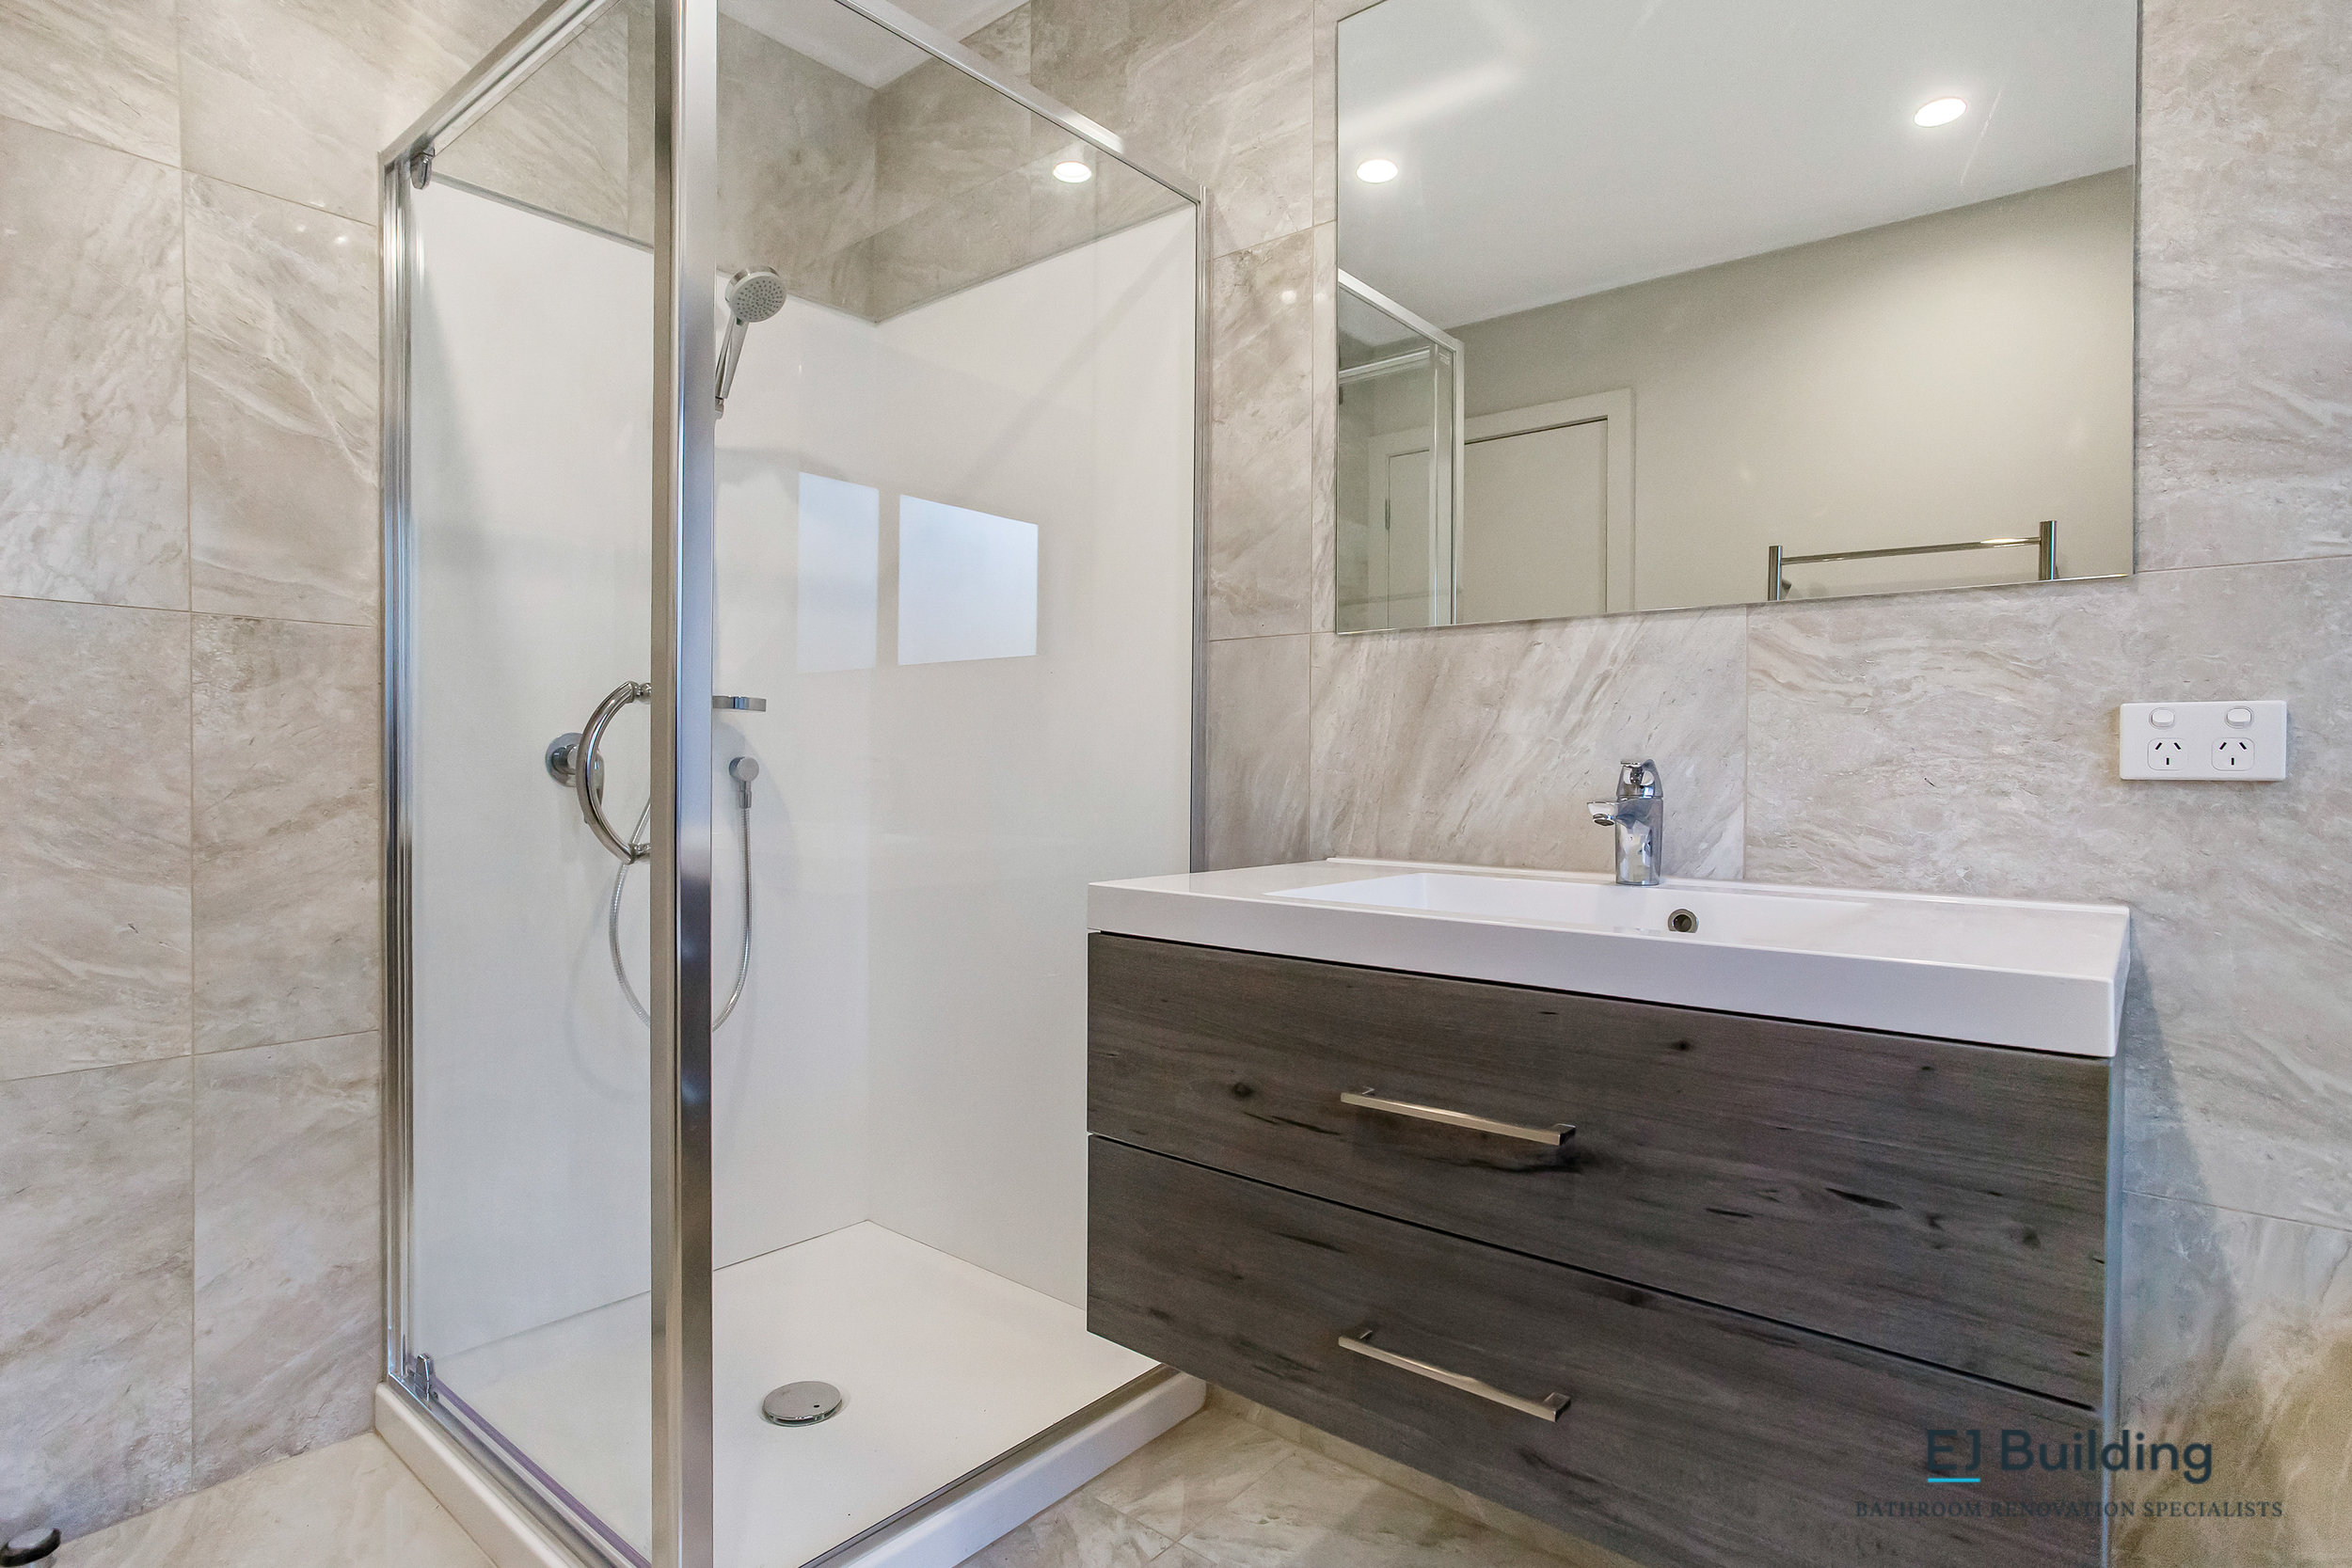 Acrylic shower in bathroom with tiled bathroom walls. In renovated bathroom in Auckland NZ.